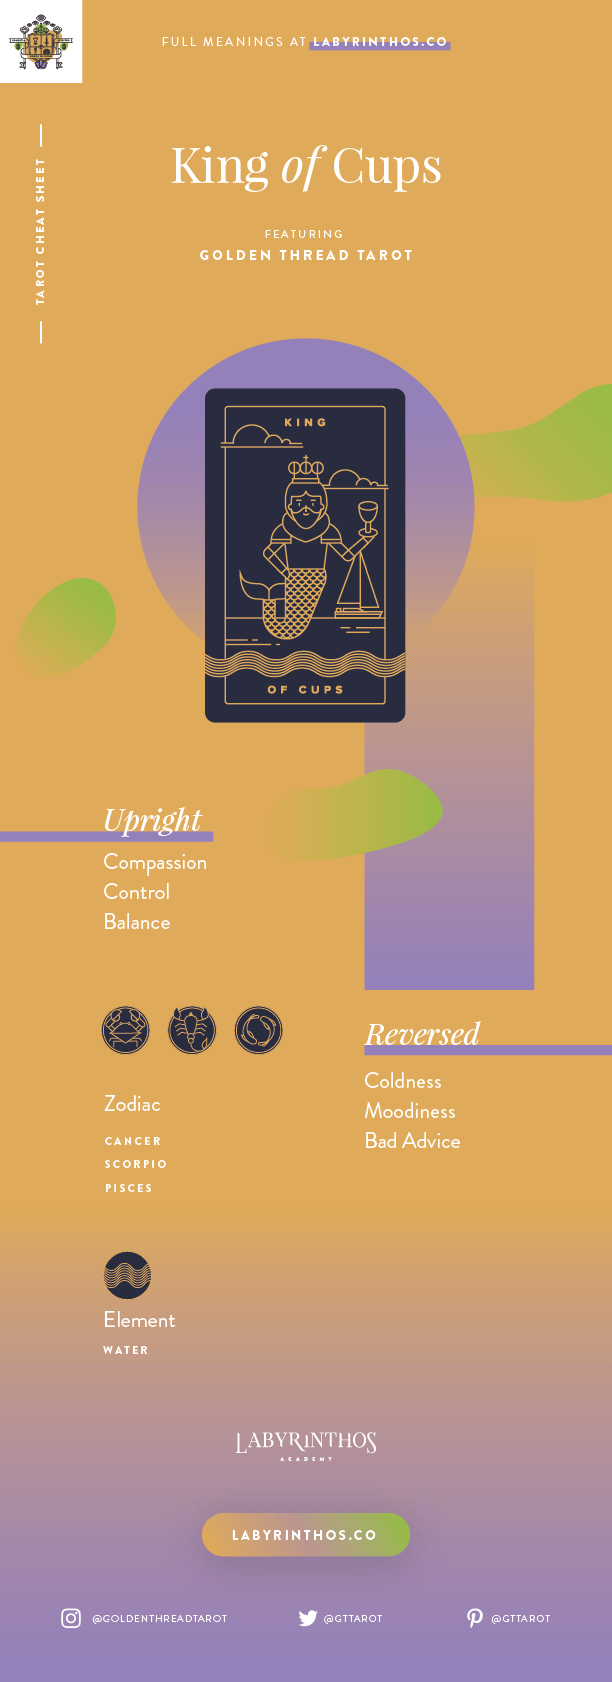 King of Cups Meaning - Tarot Card Meanings Cheat Sheet. Art from Golden Thread Tarot.